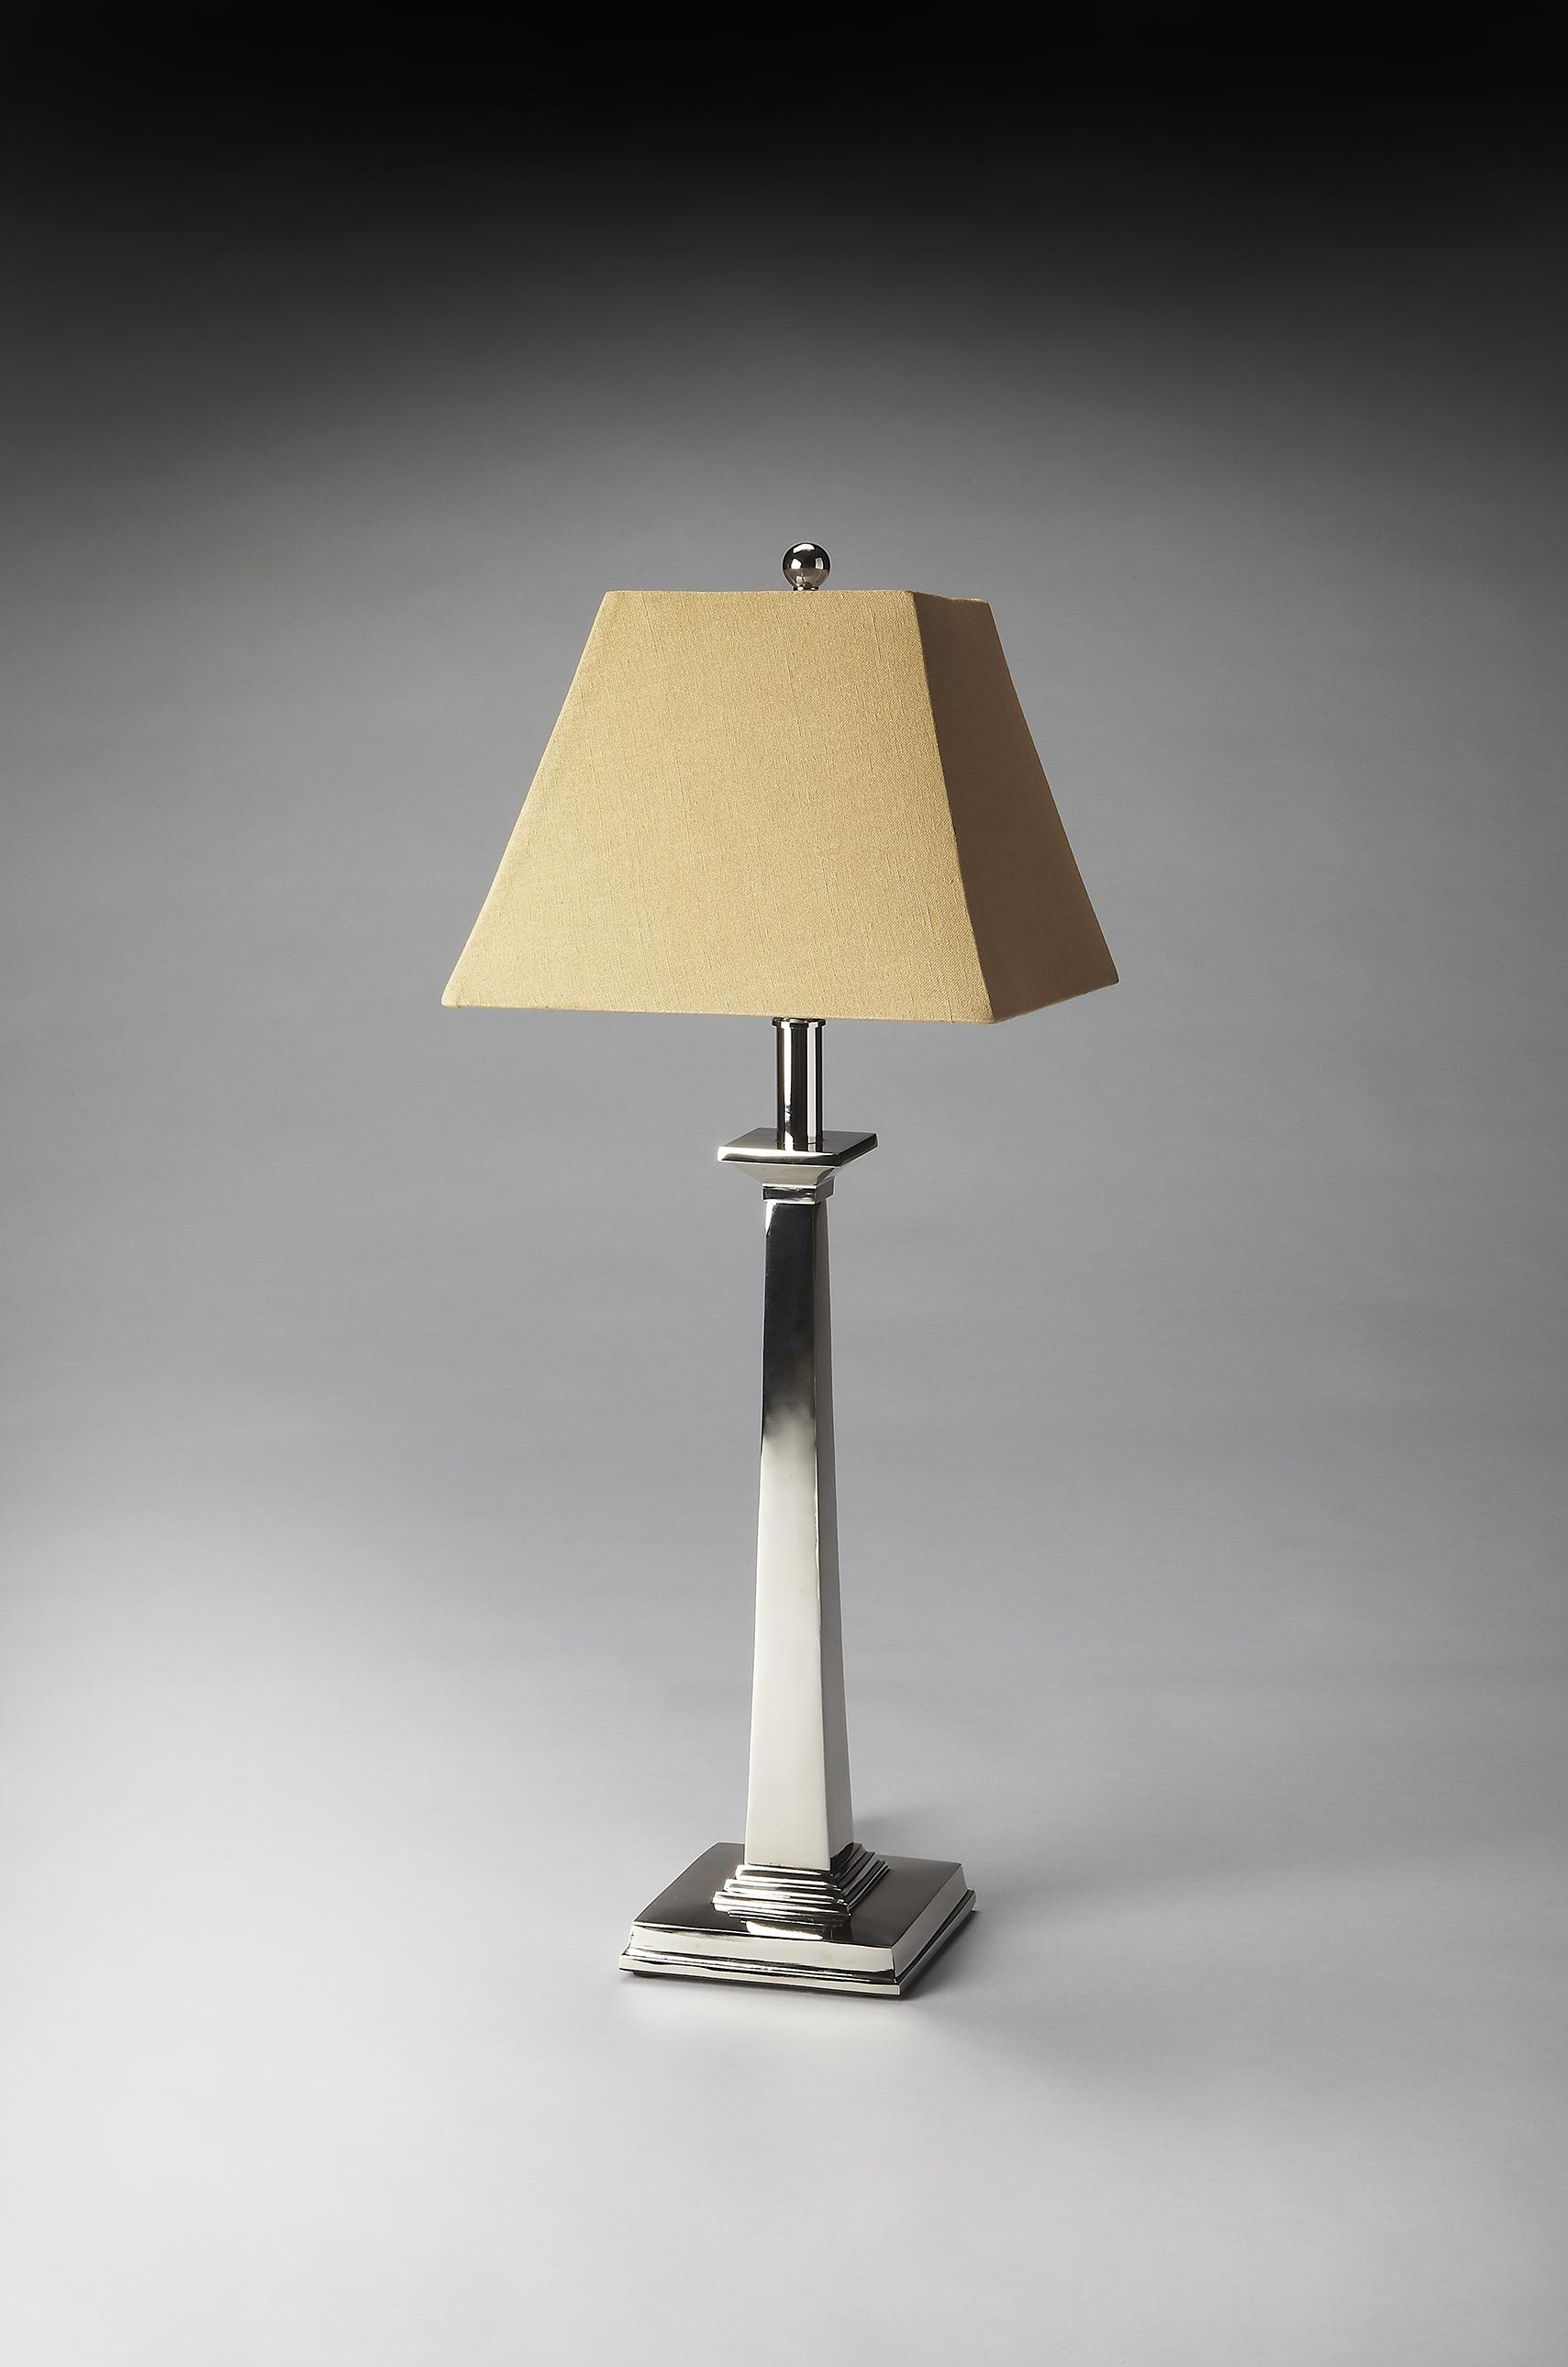 Butler Specialty Company Hors D'oeuvres Table Lamp - Item Number: 7146116